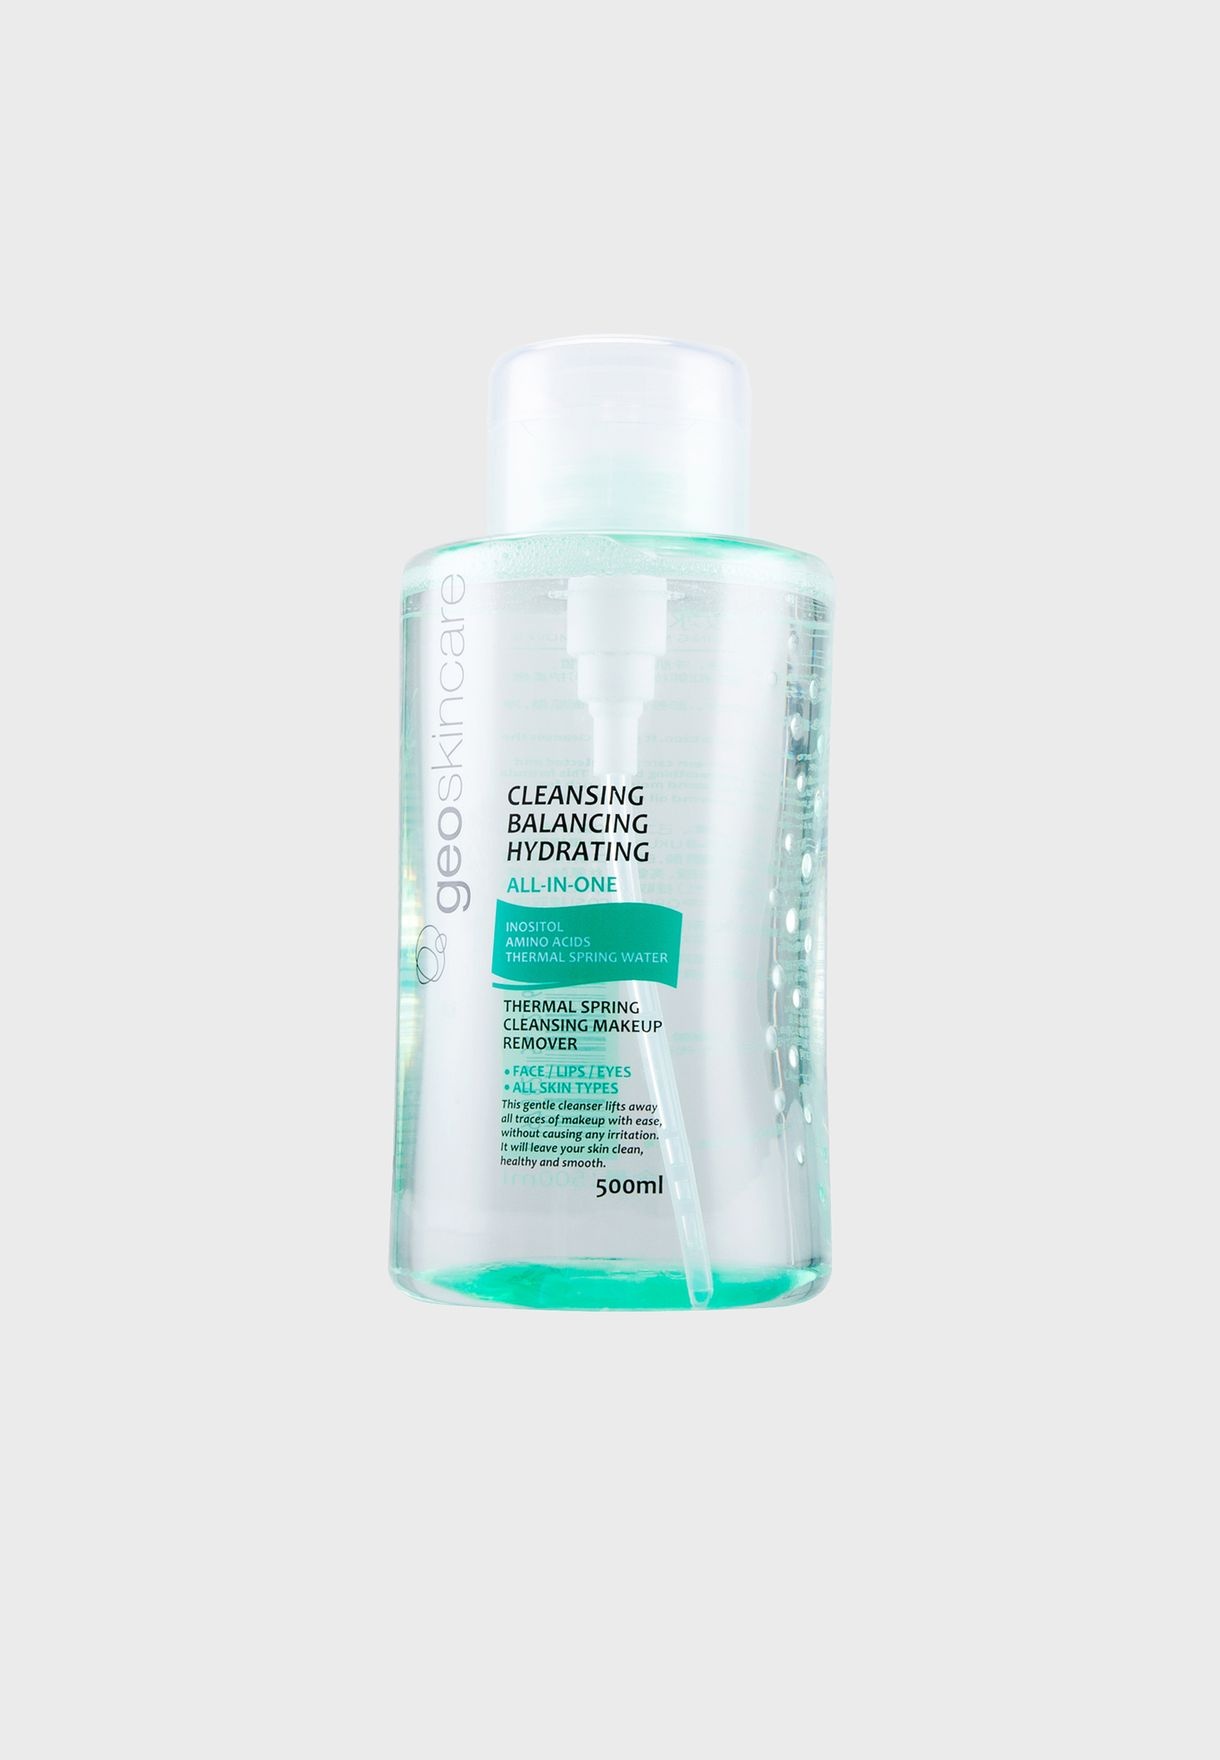 Makeup Remover - Thermal Spring